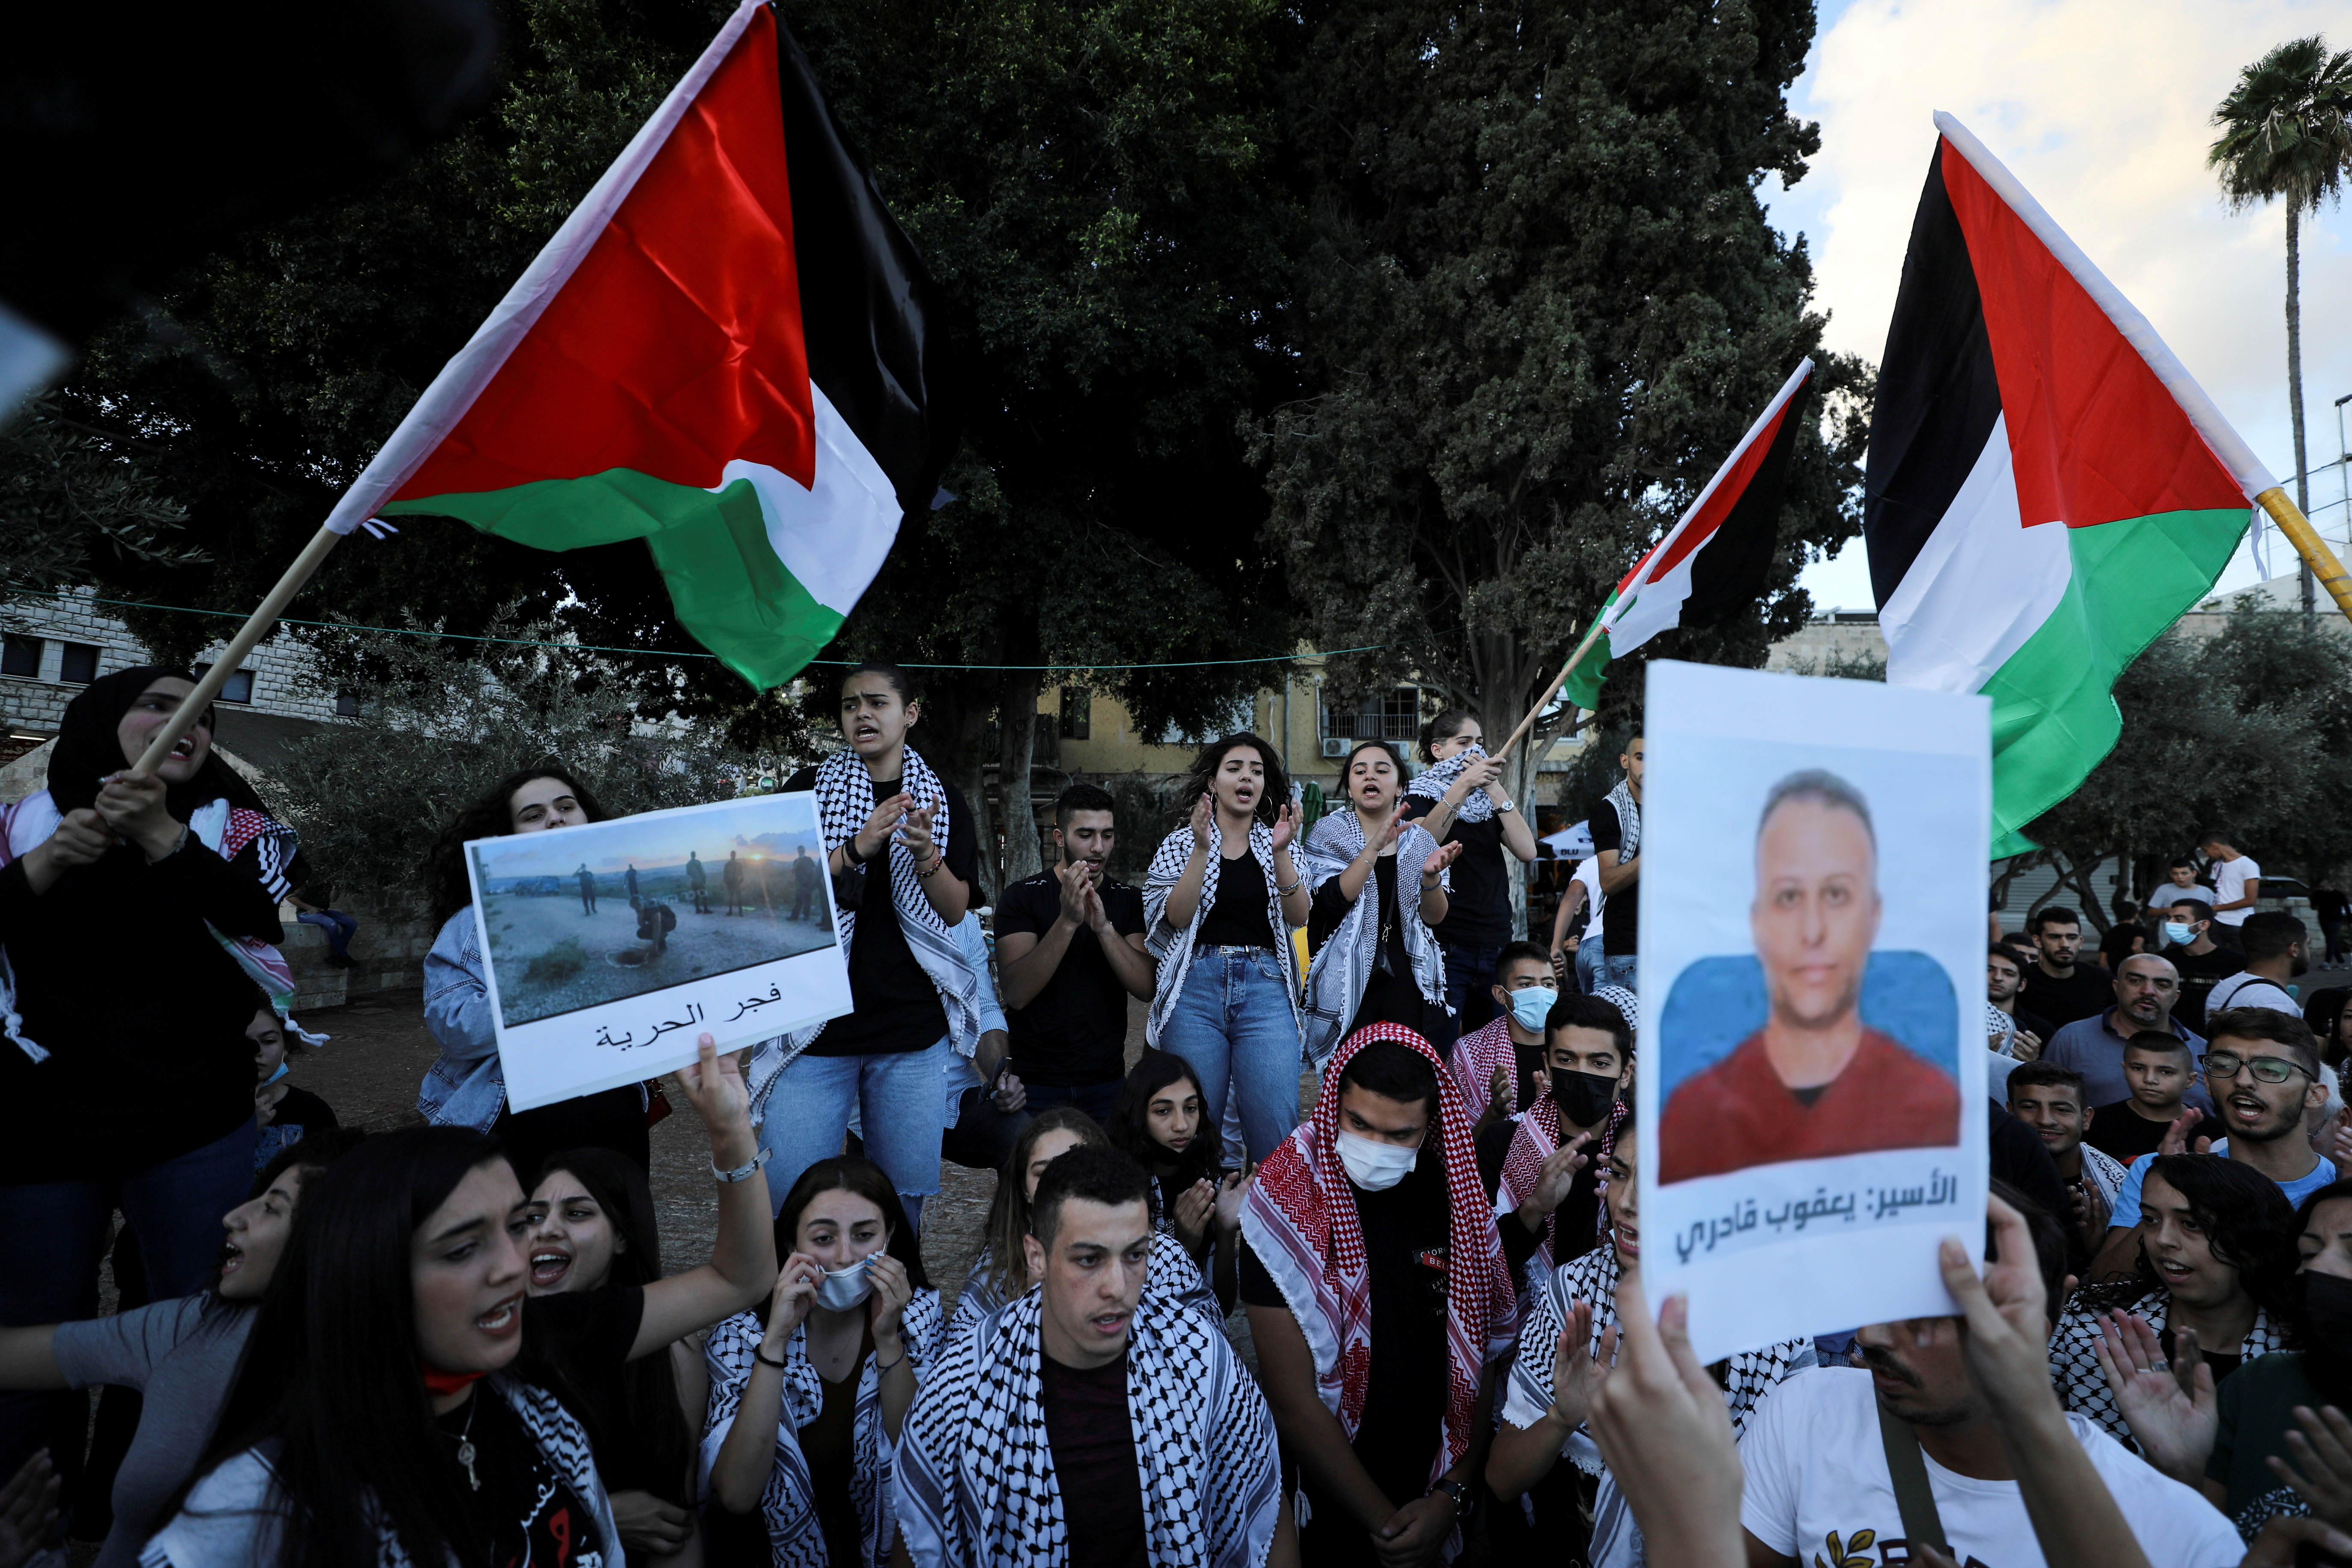 People take part in a protest as they support the six Palestinian militants men who had escaped from Gilboa prison earlier this week in Nazareth, Israel September 11, 2021. REUTERS/Ammar Awad/File Photo